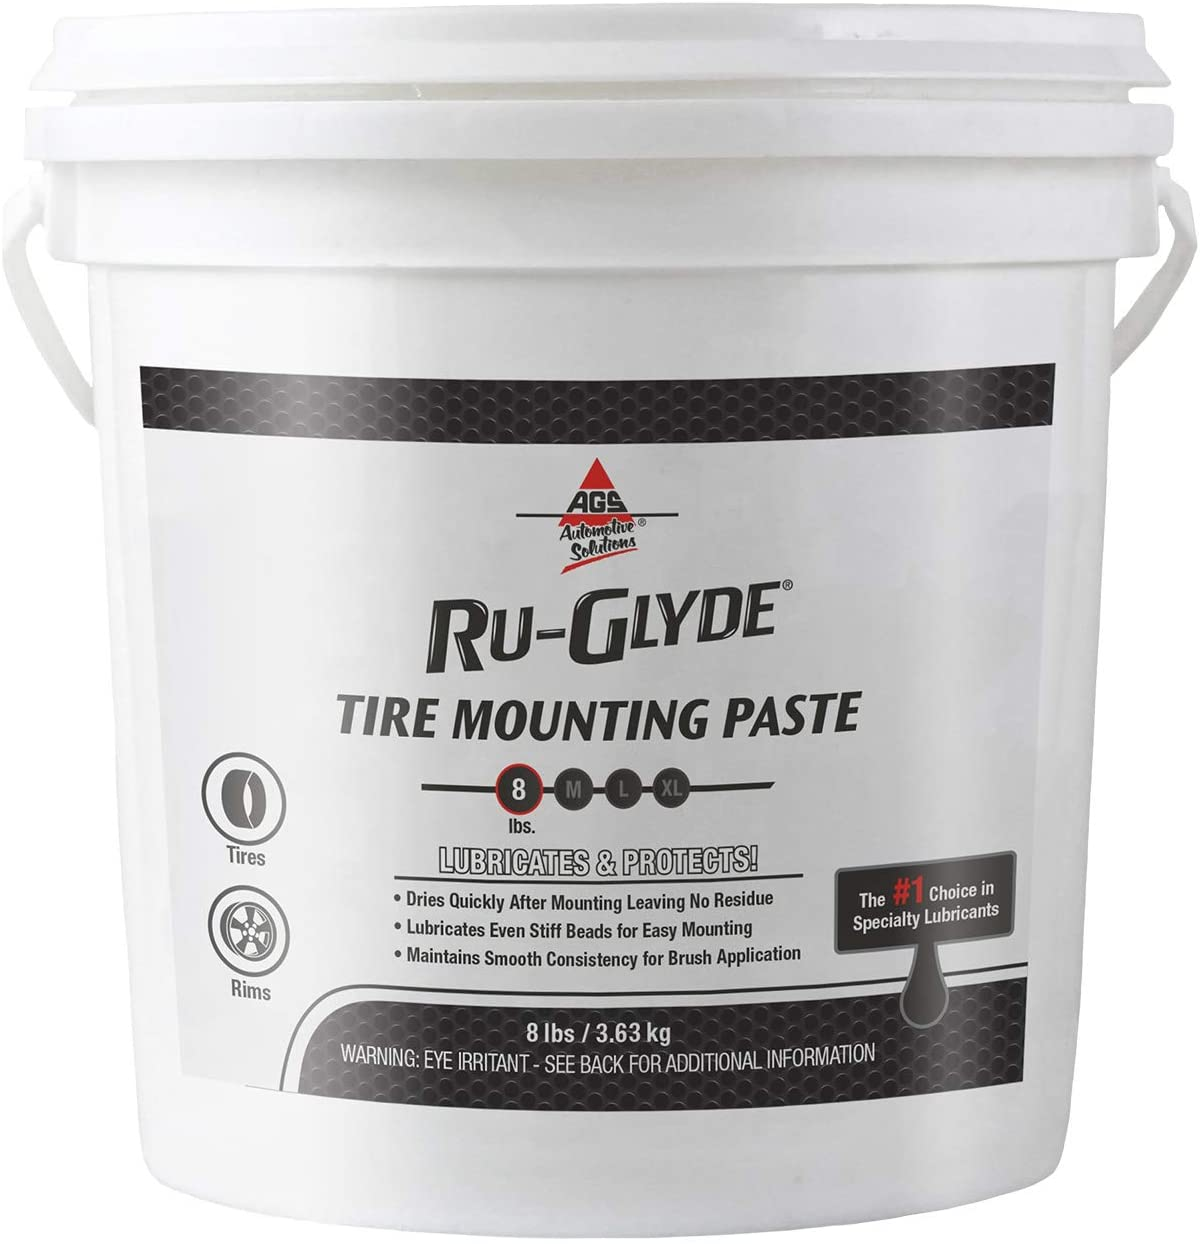 Ru-Glyde Tire Mounting Paste, Pail, 8 lb